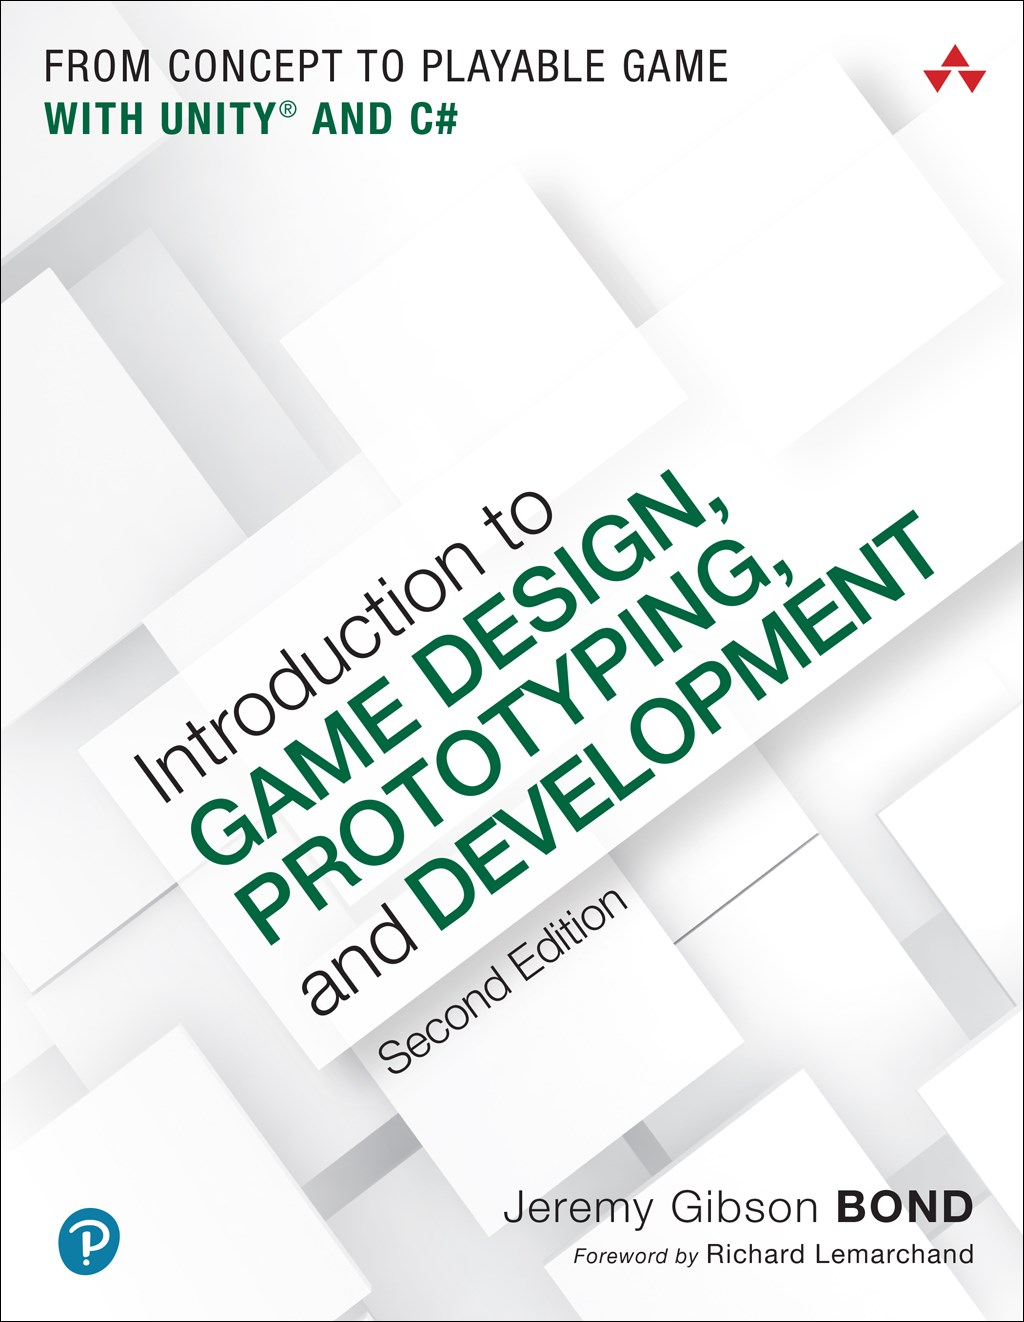 Introduction to Game Design, Prototyping, and Development: From Concept to Playable Game with Unity and C#, 2nd Edition